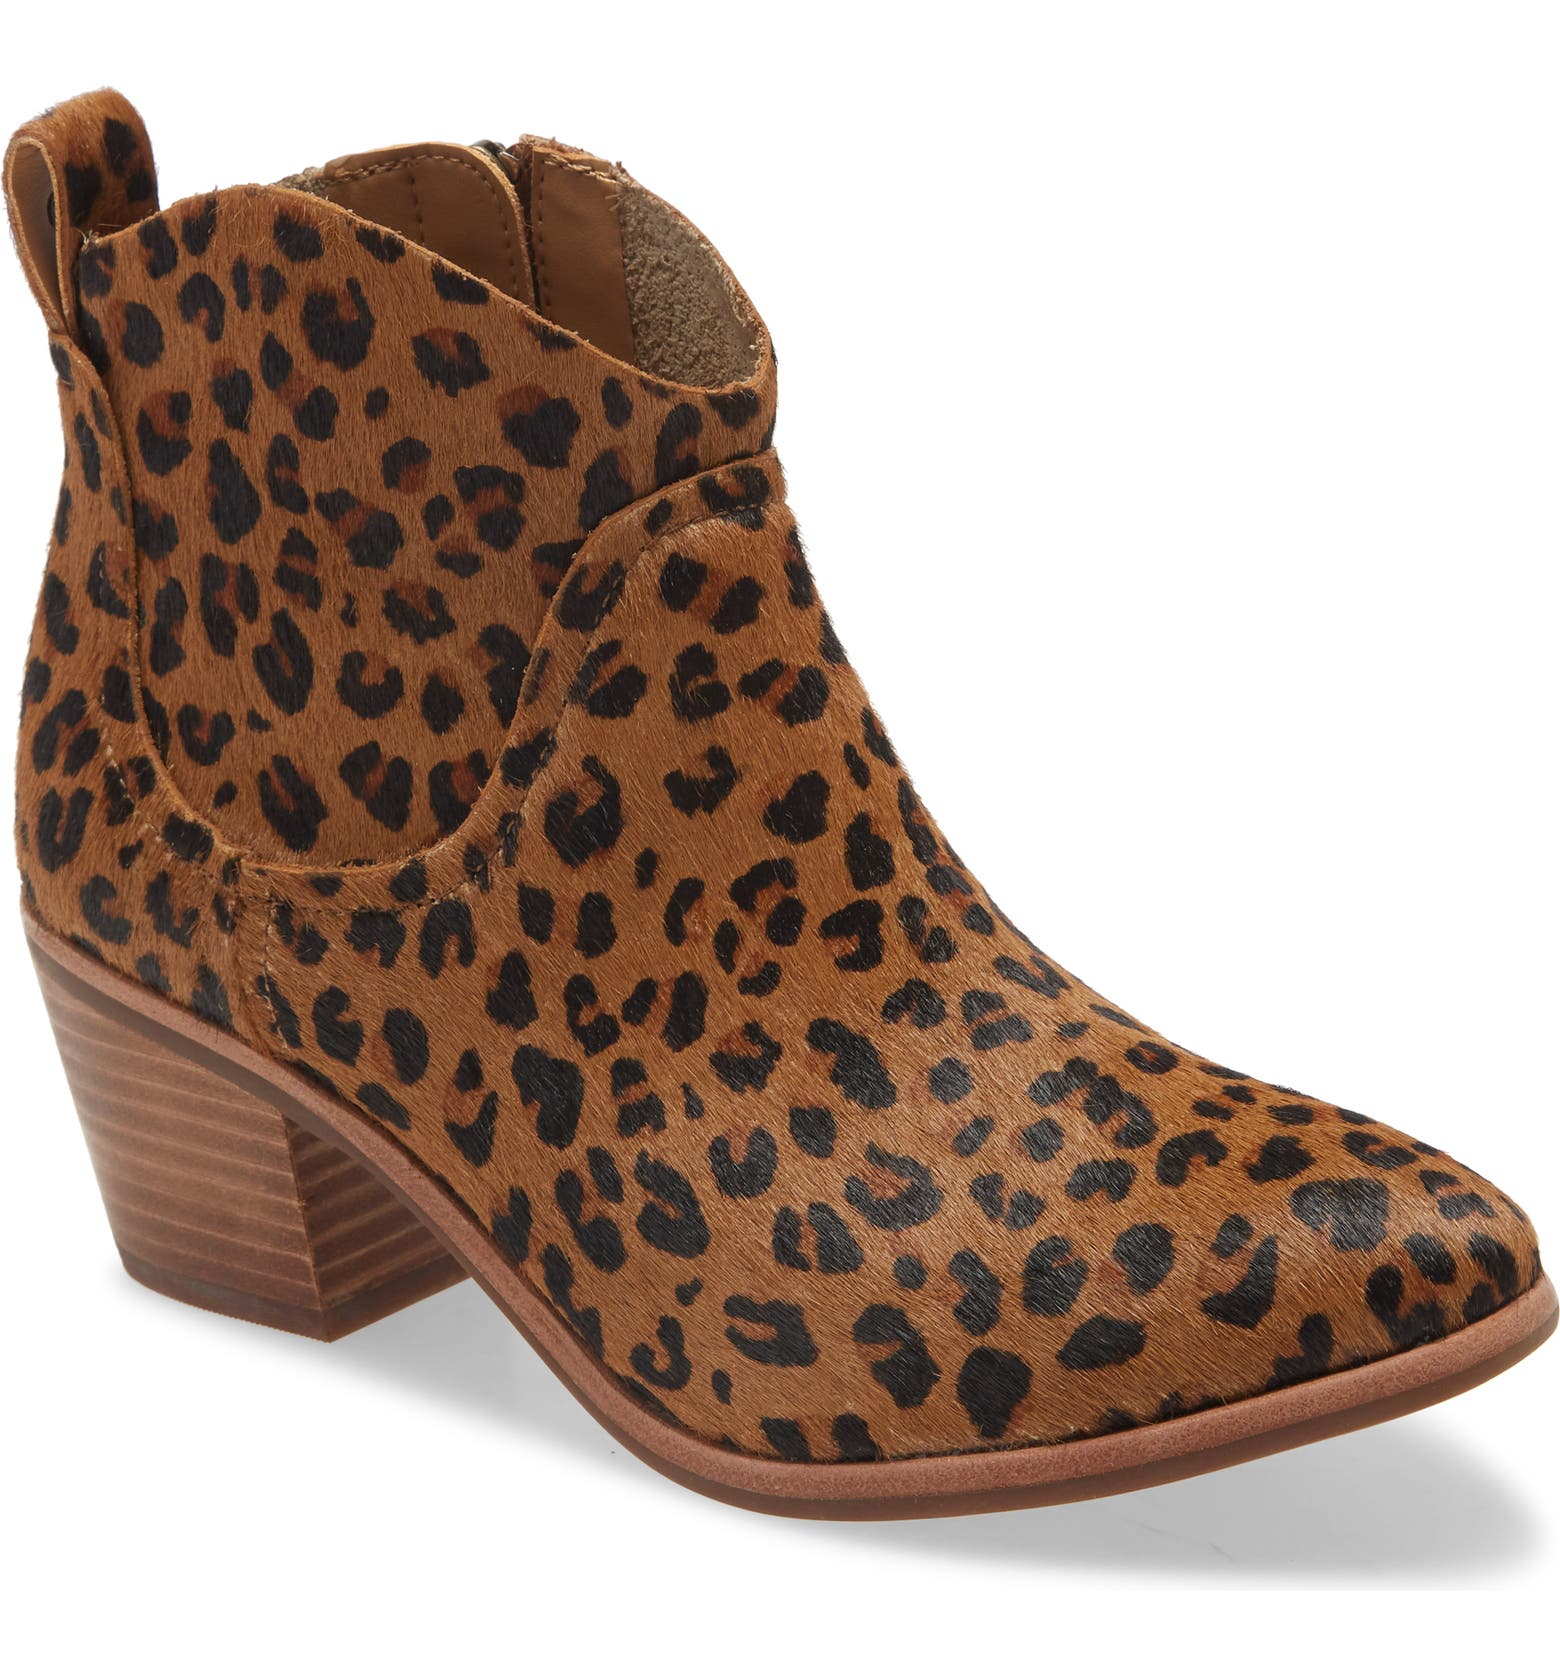 .98 Kingsburg Bootie + Free shipping over  at Nordstrom Rack!